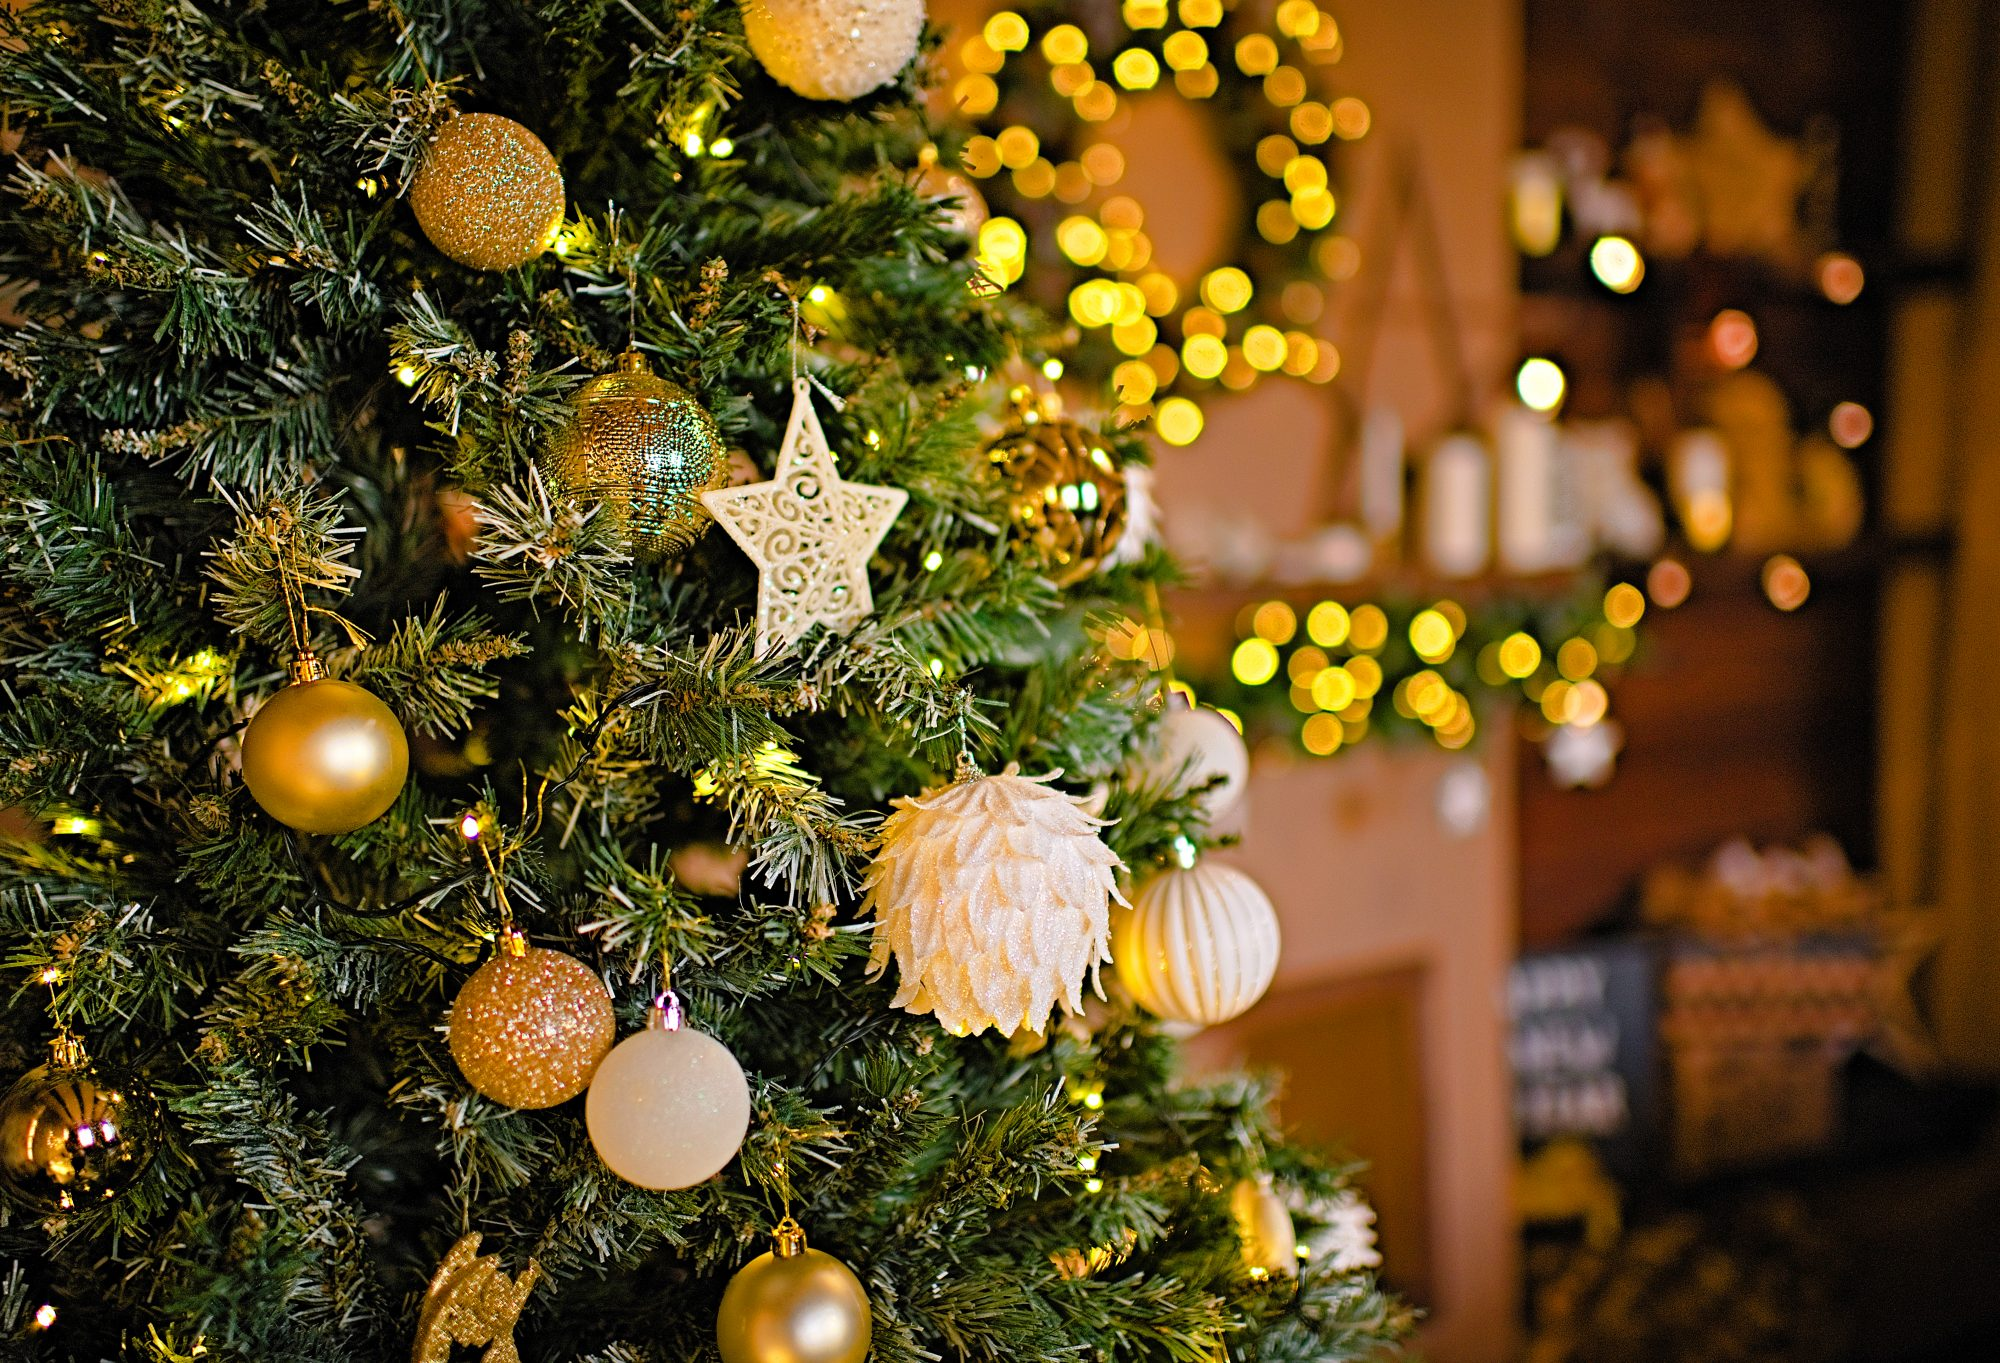 Christmas decorations background, fireplace christmas decoration, home decoration for Christmas, fireplaceб mantel decoration, christmas lights, gift box, candles, furtree